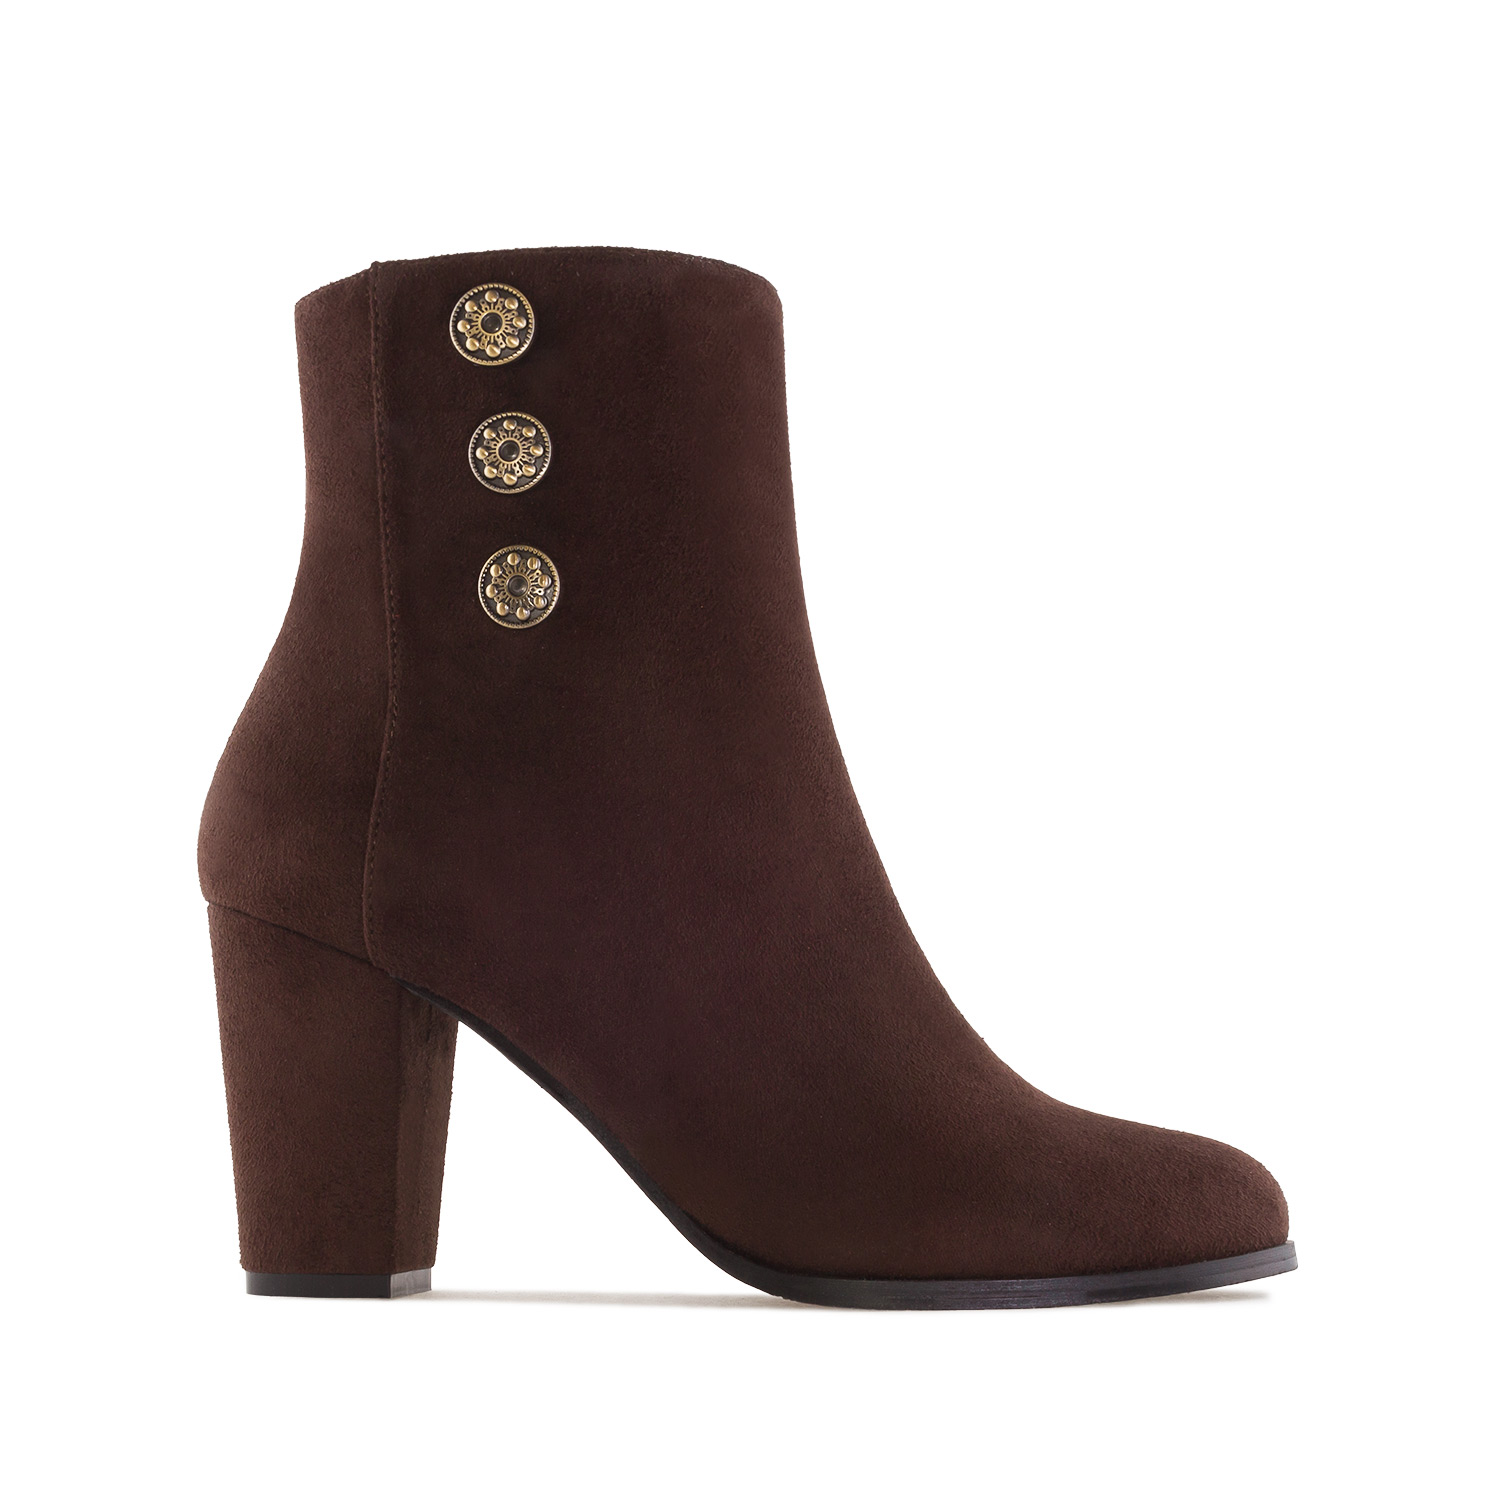 Ankle Boots in Brown Suede